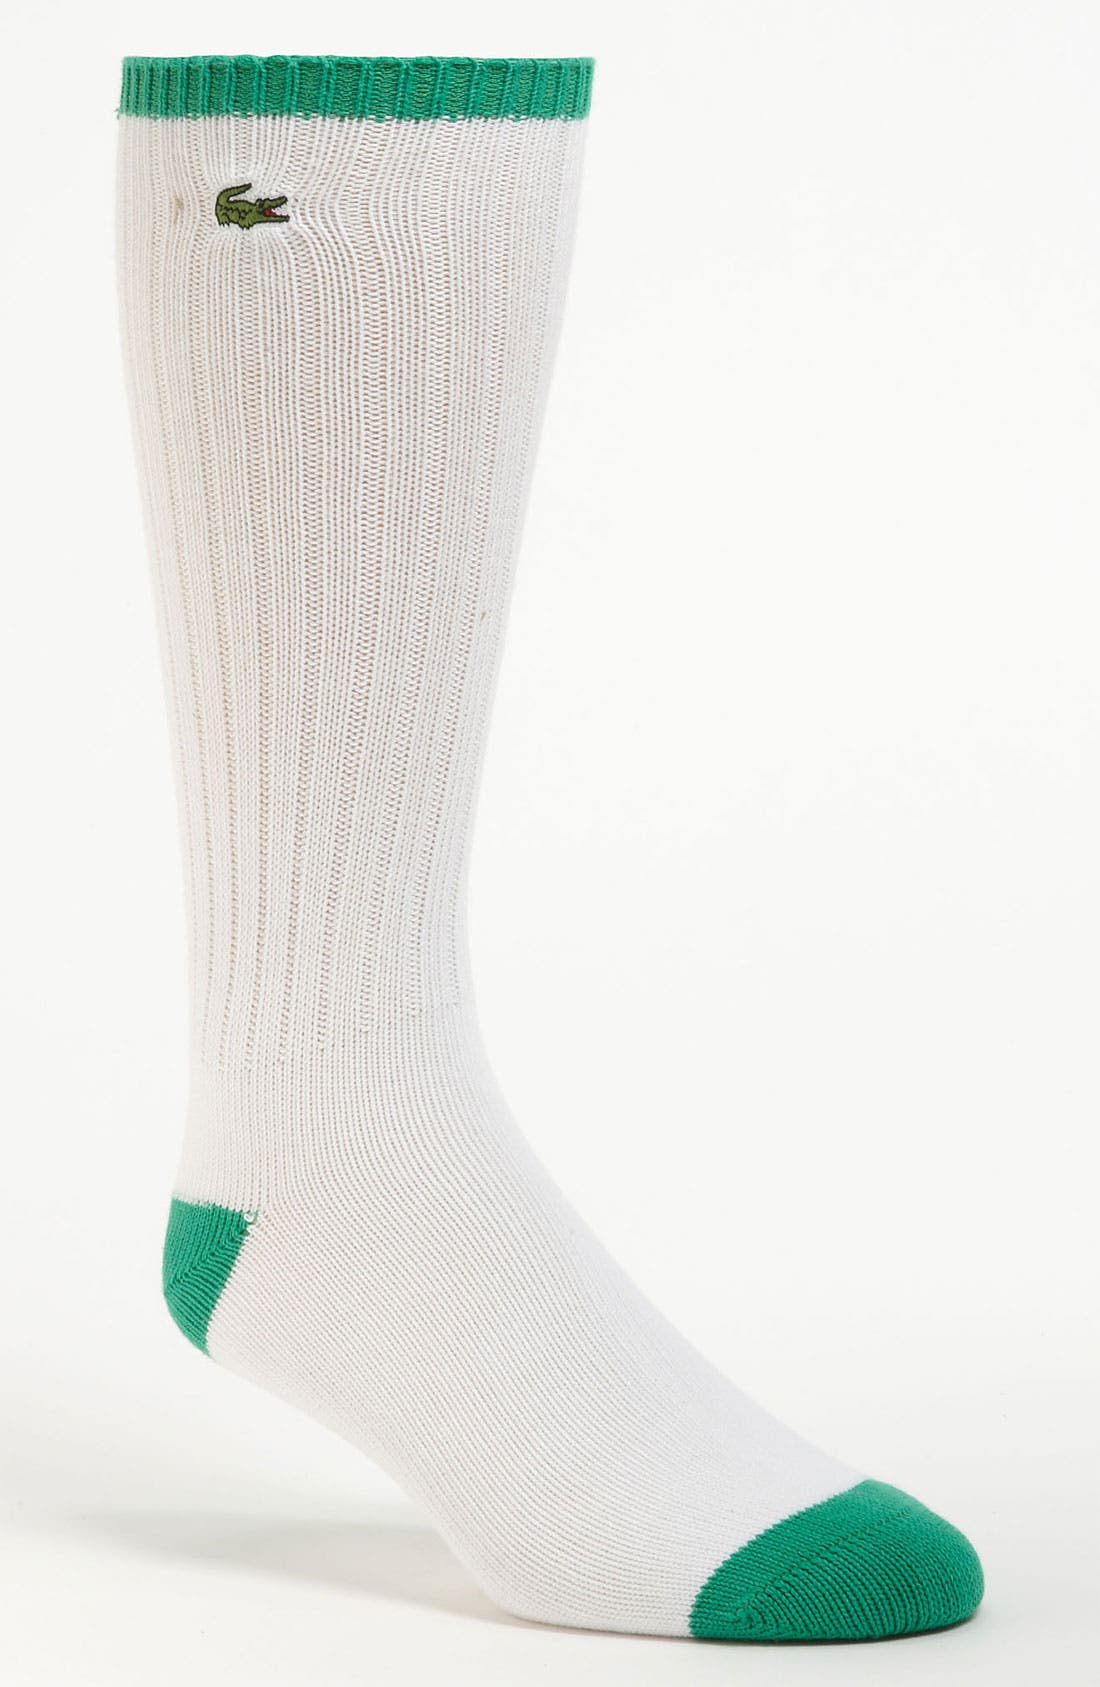 Alternate Image 1 Selected - Lacoste 'Classic Tip' Socks